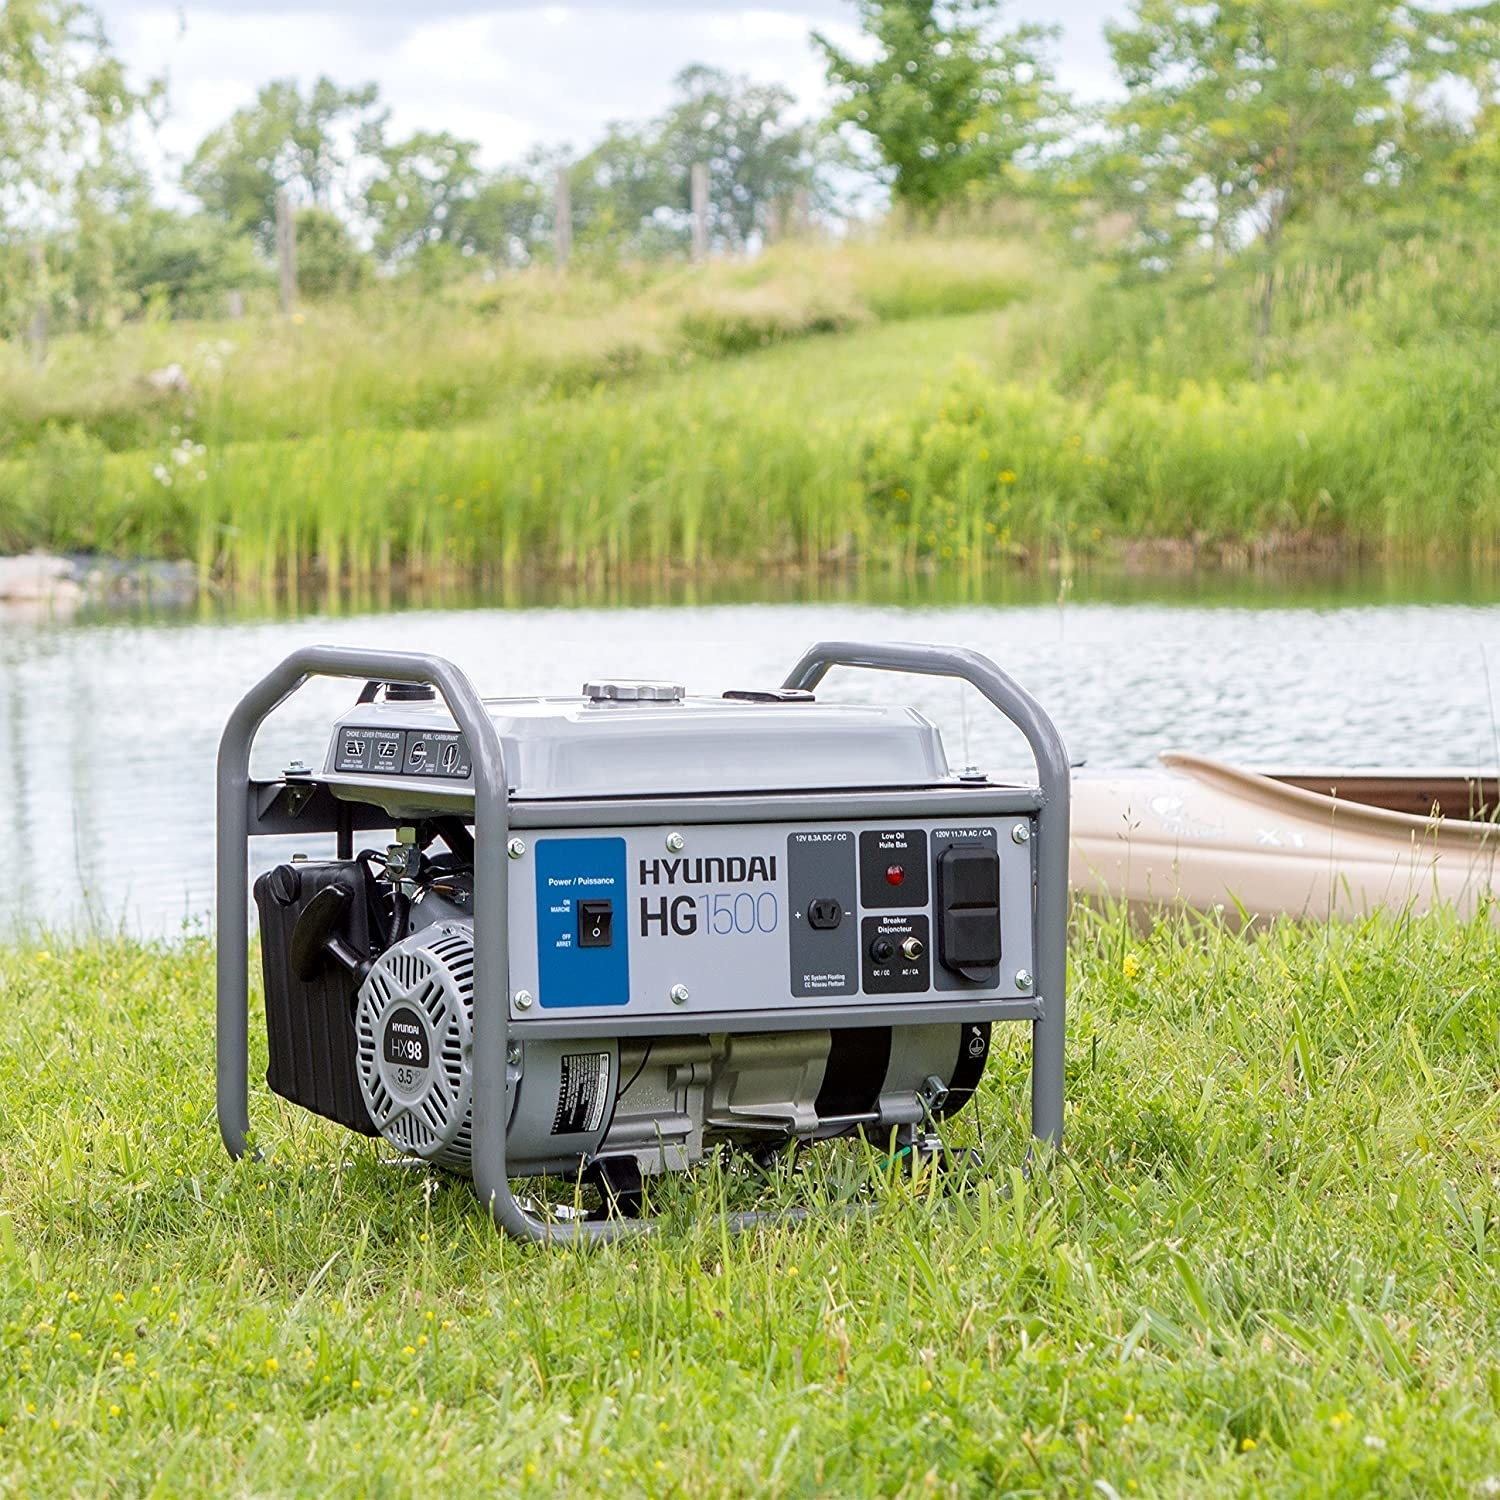 A Hyundai portable generator sitting on the grass next to a lake